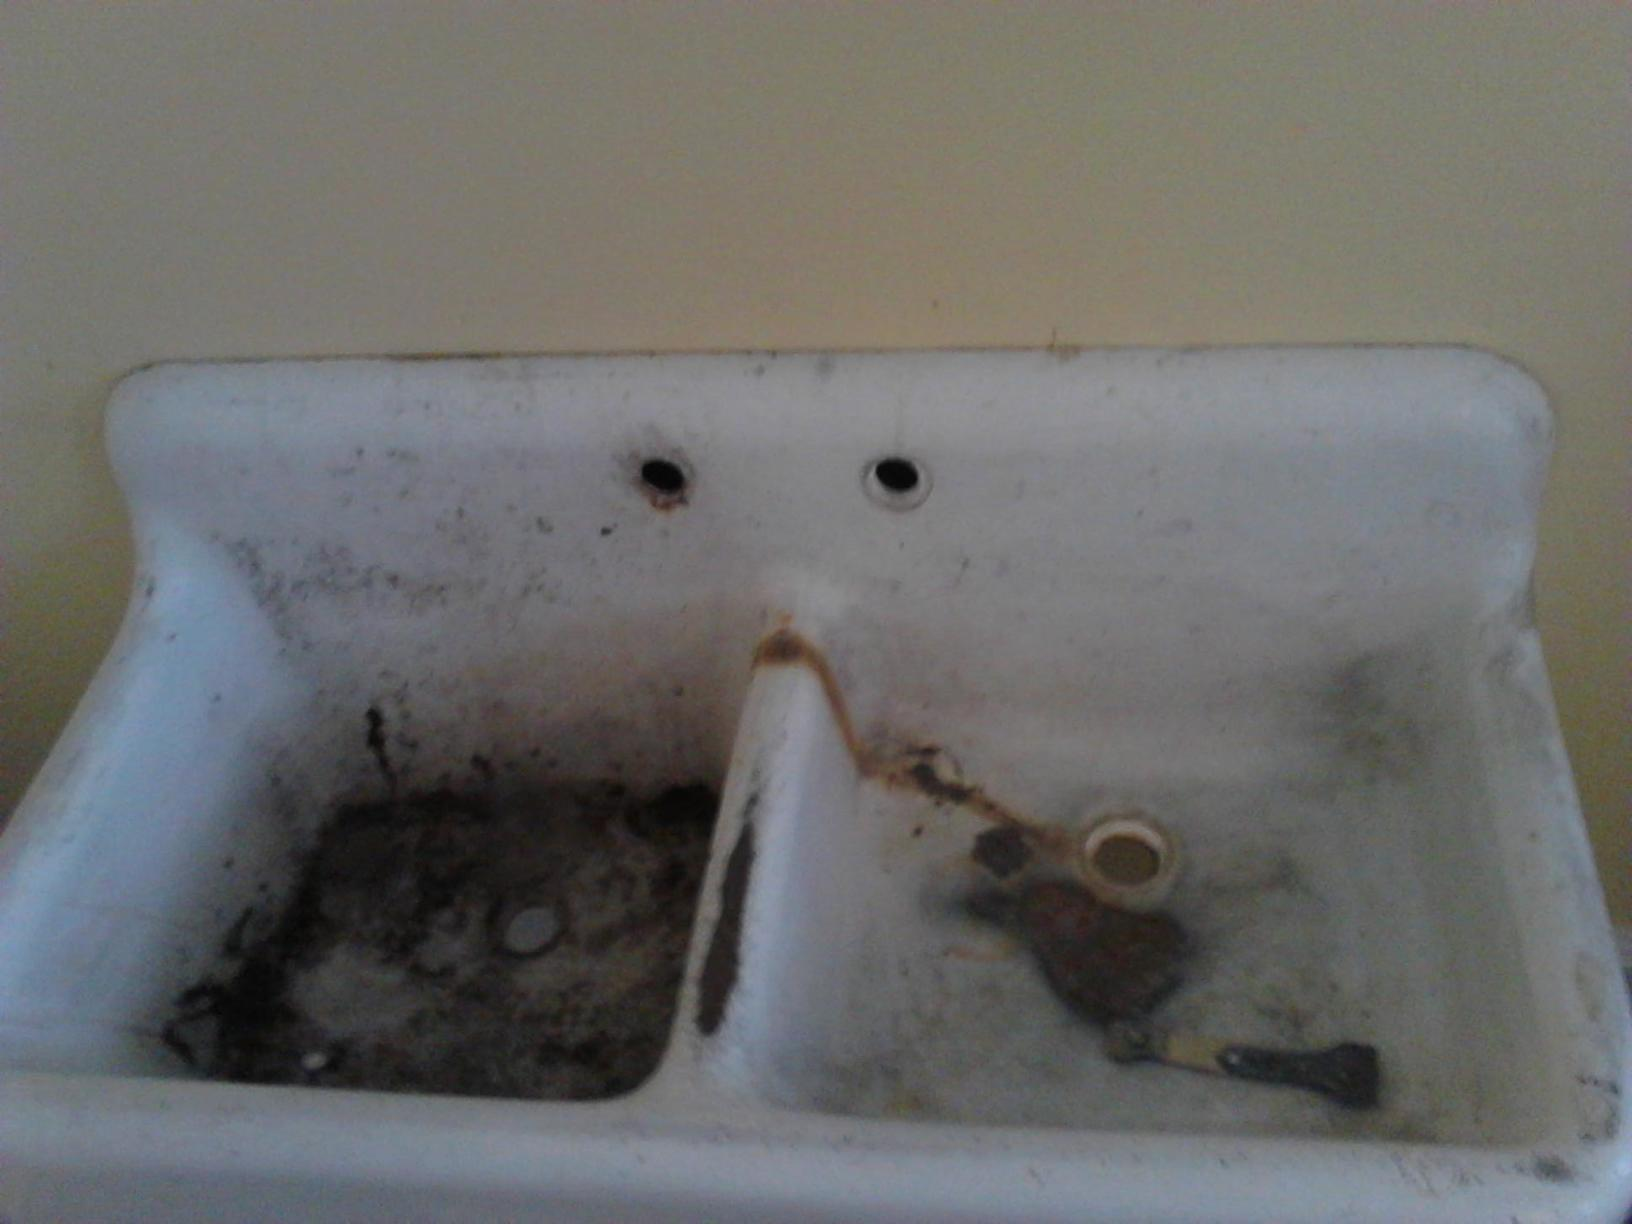 Refinishing of an old cast iron sink - Before Photo